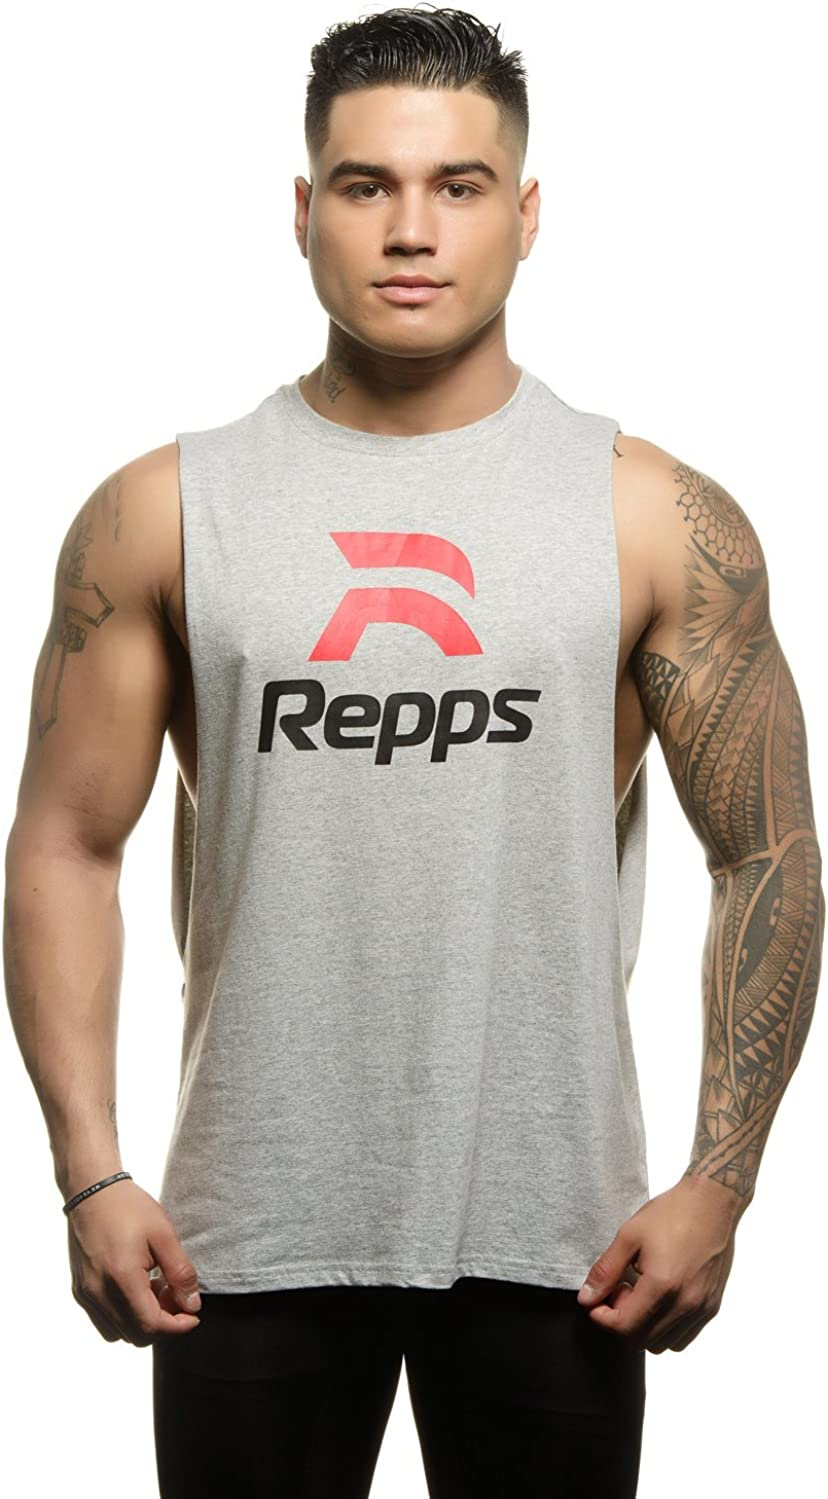 outlet shopping Repps Workout Cut Off Shirts for Muscle The Men Perfect Shirt